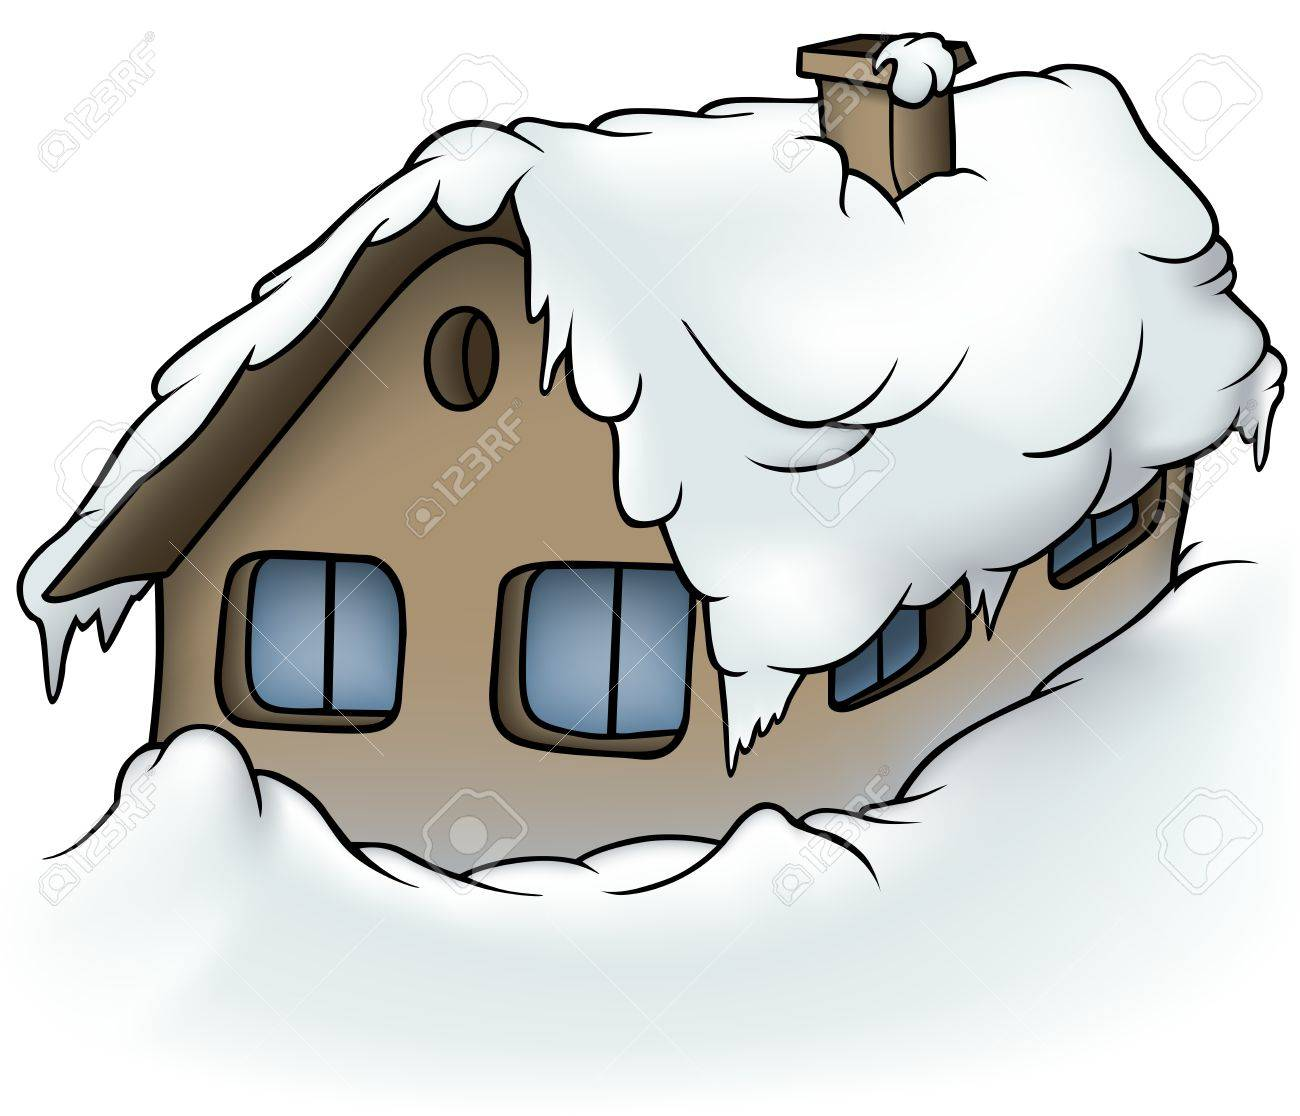 Snowy Cottage - Cartoon Illustration, Vector Royalty Free Cliparts ...